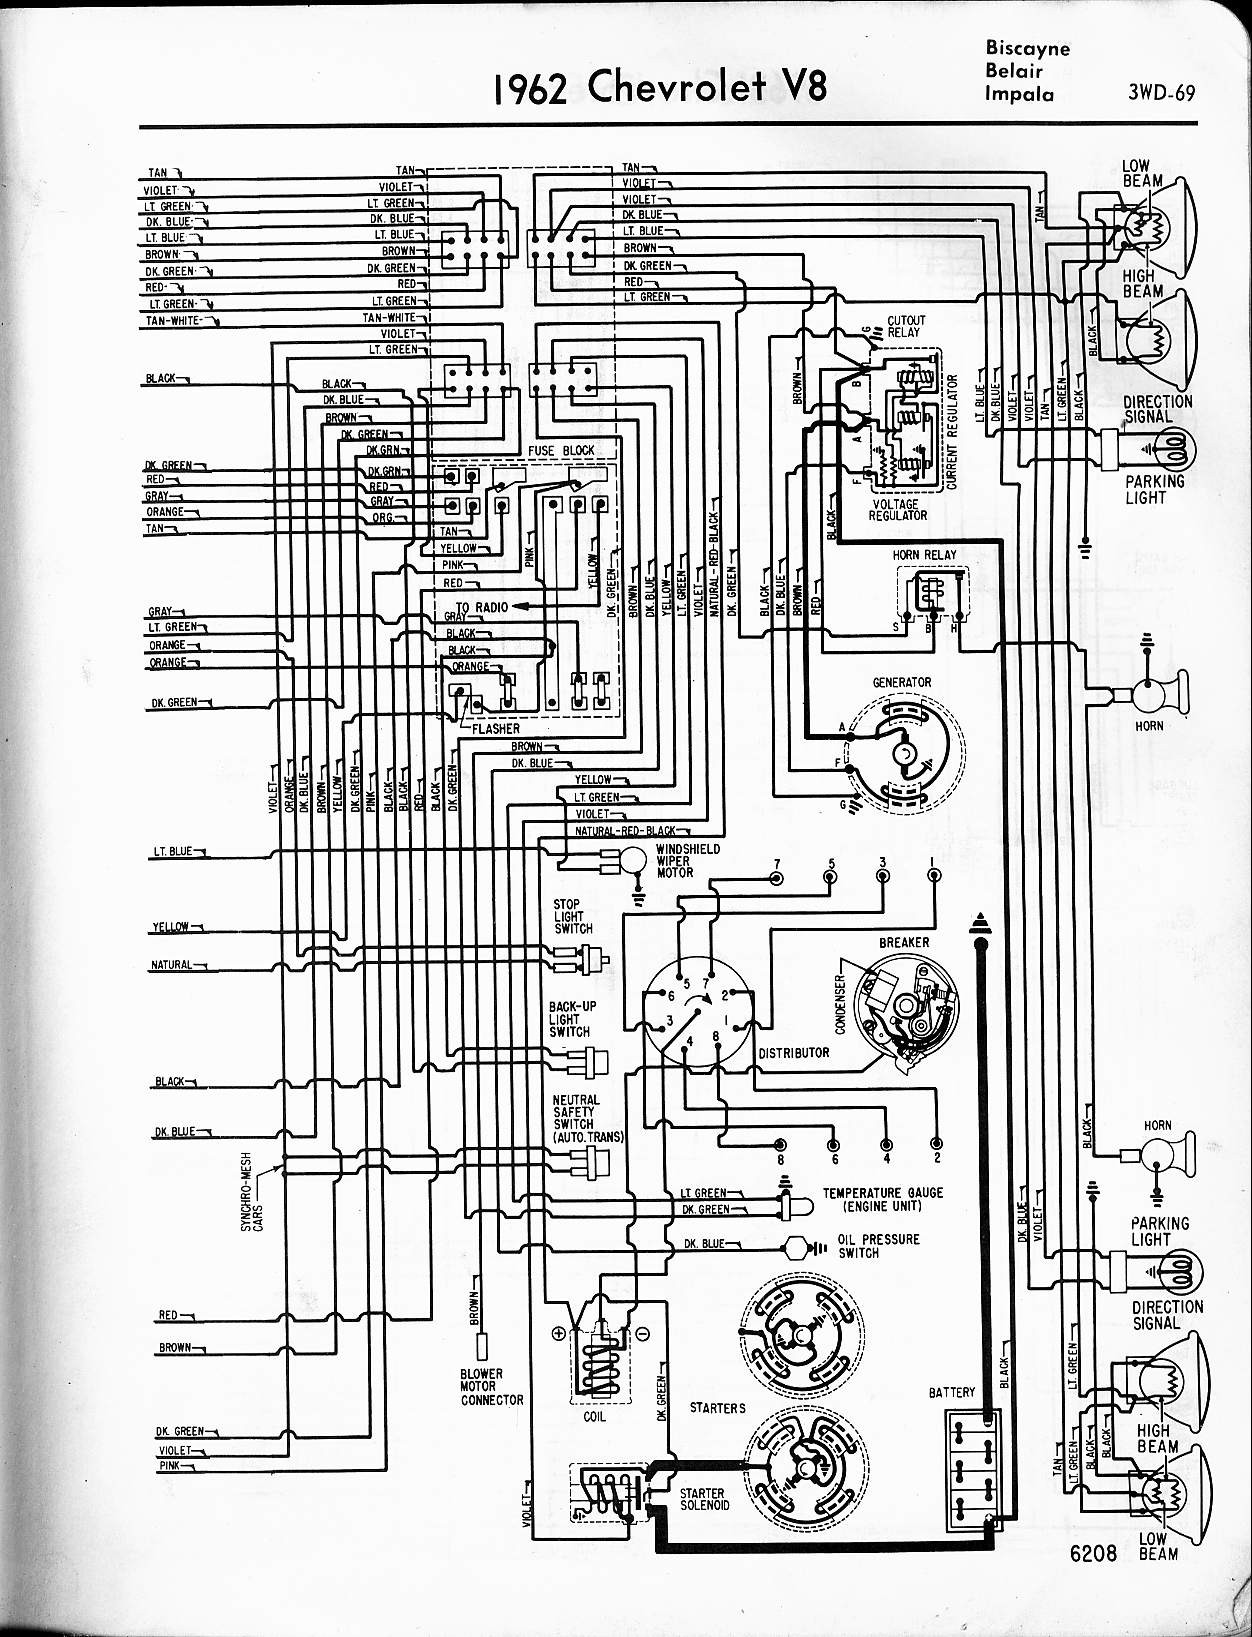 2006 Chevy Impala Engine Diagram 57 65 Chevy Wiring Diagrams Of 2006 Chevy Impala Engine Diagram